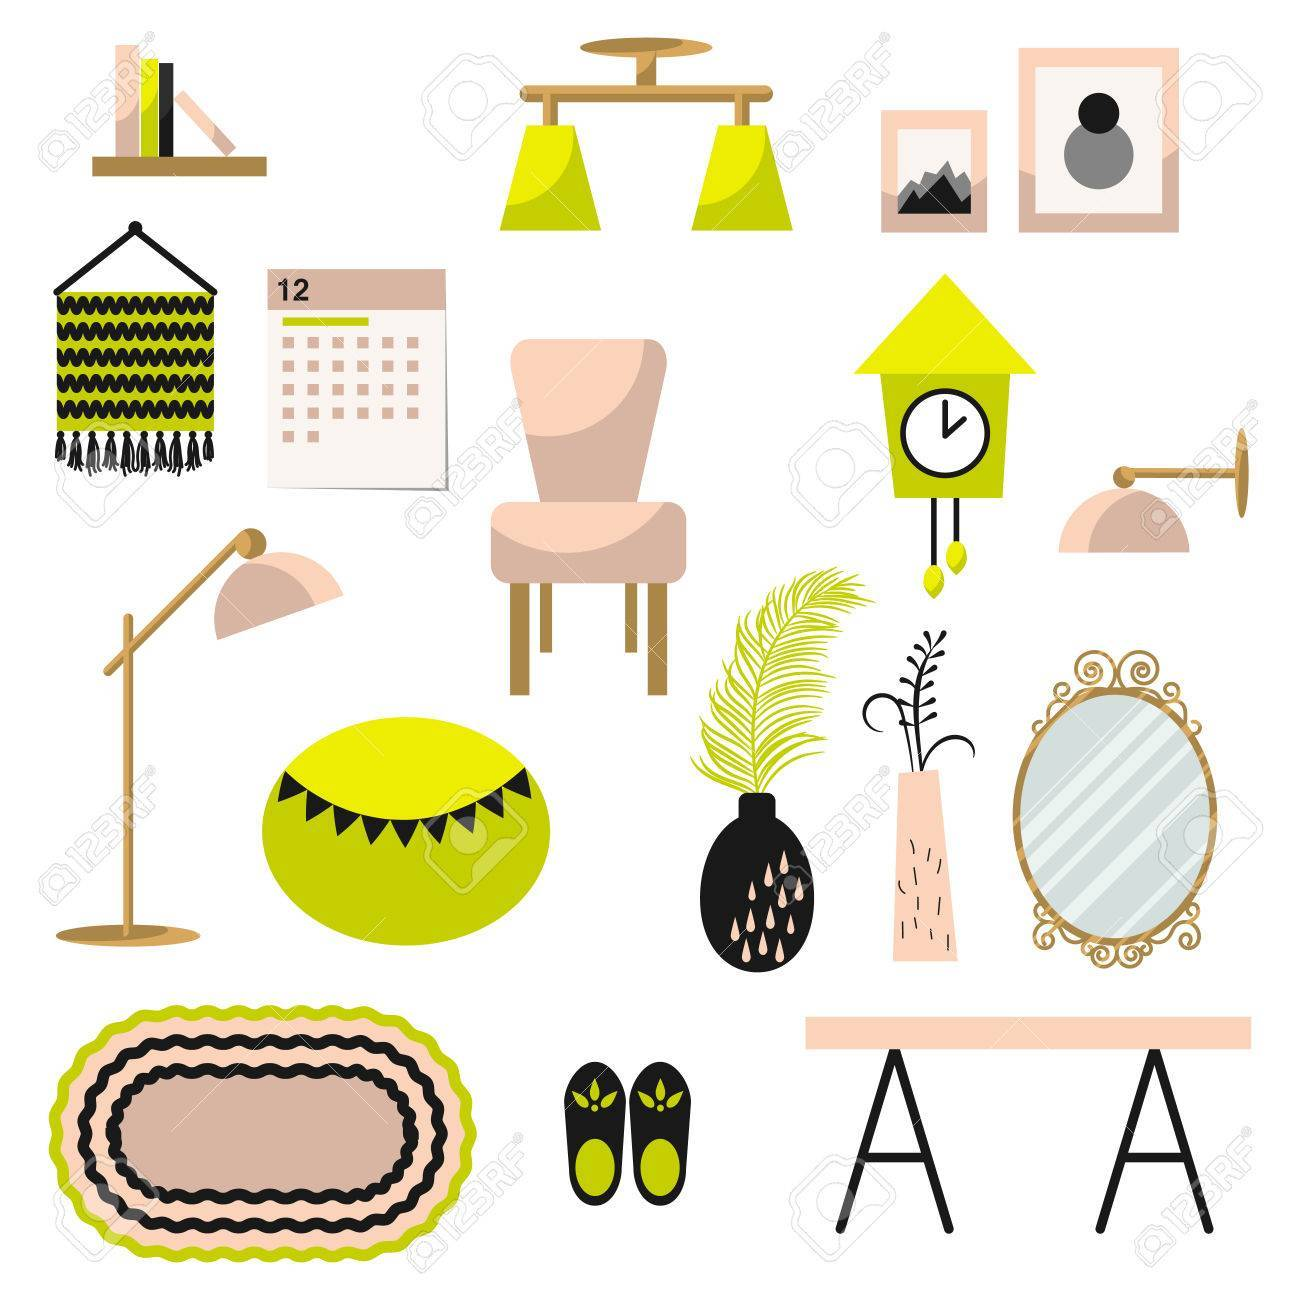 Home decor clipart jpg free stock Home decor and furniture vector set flat style » Clipart Portal jpg free stock